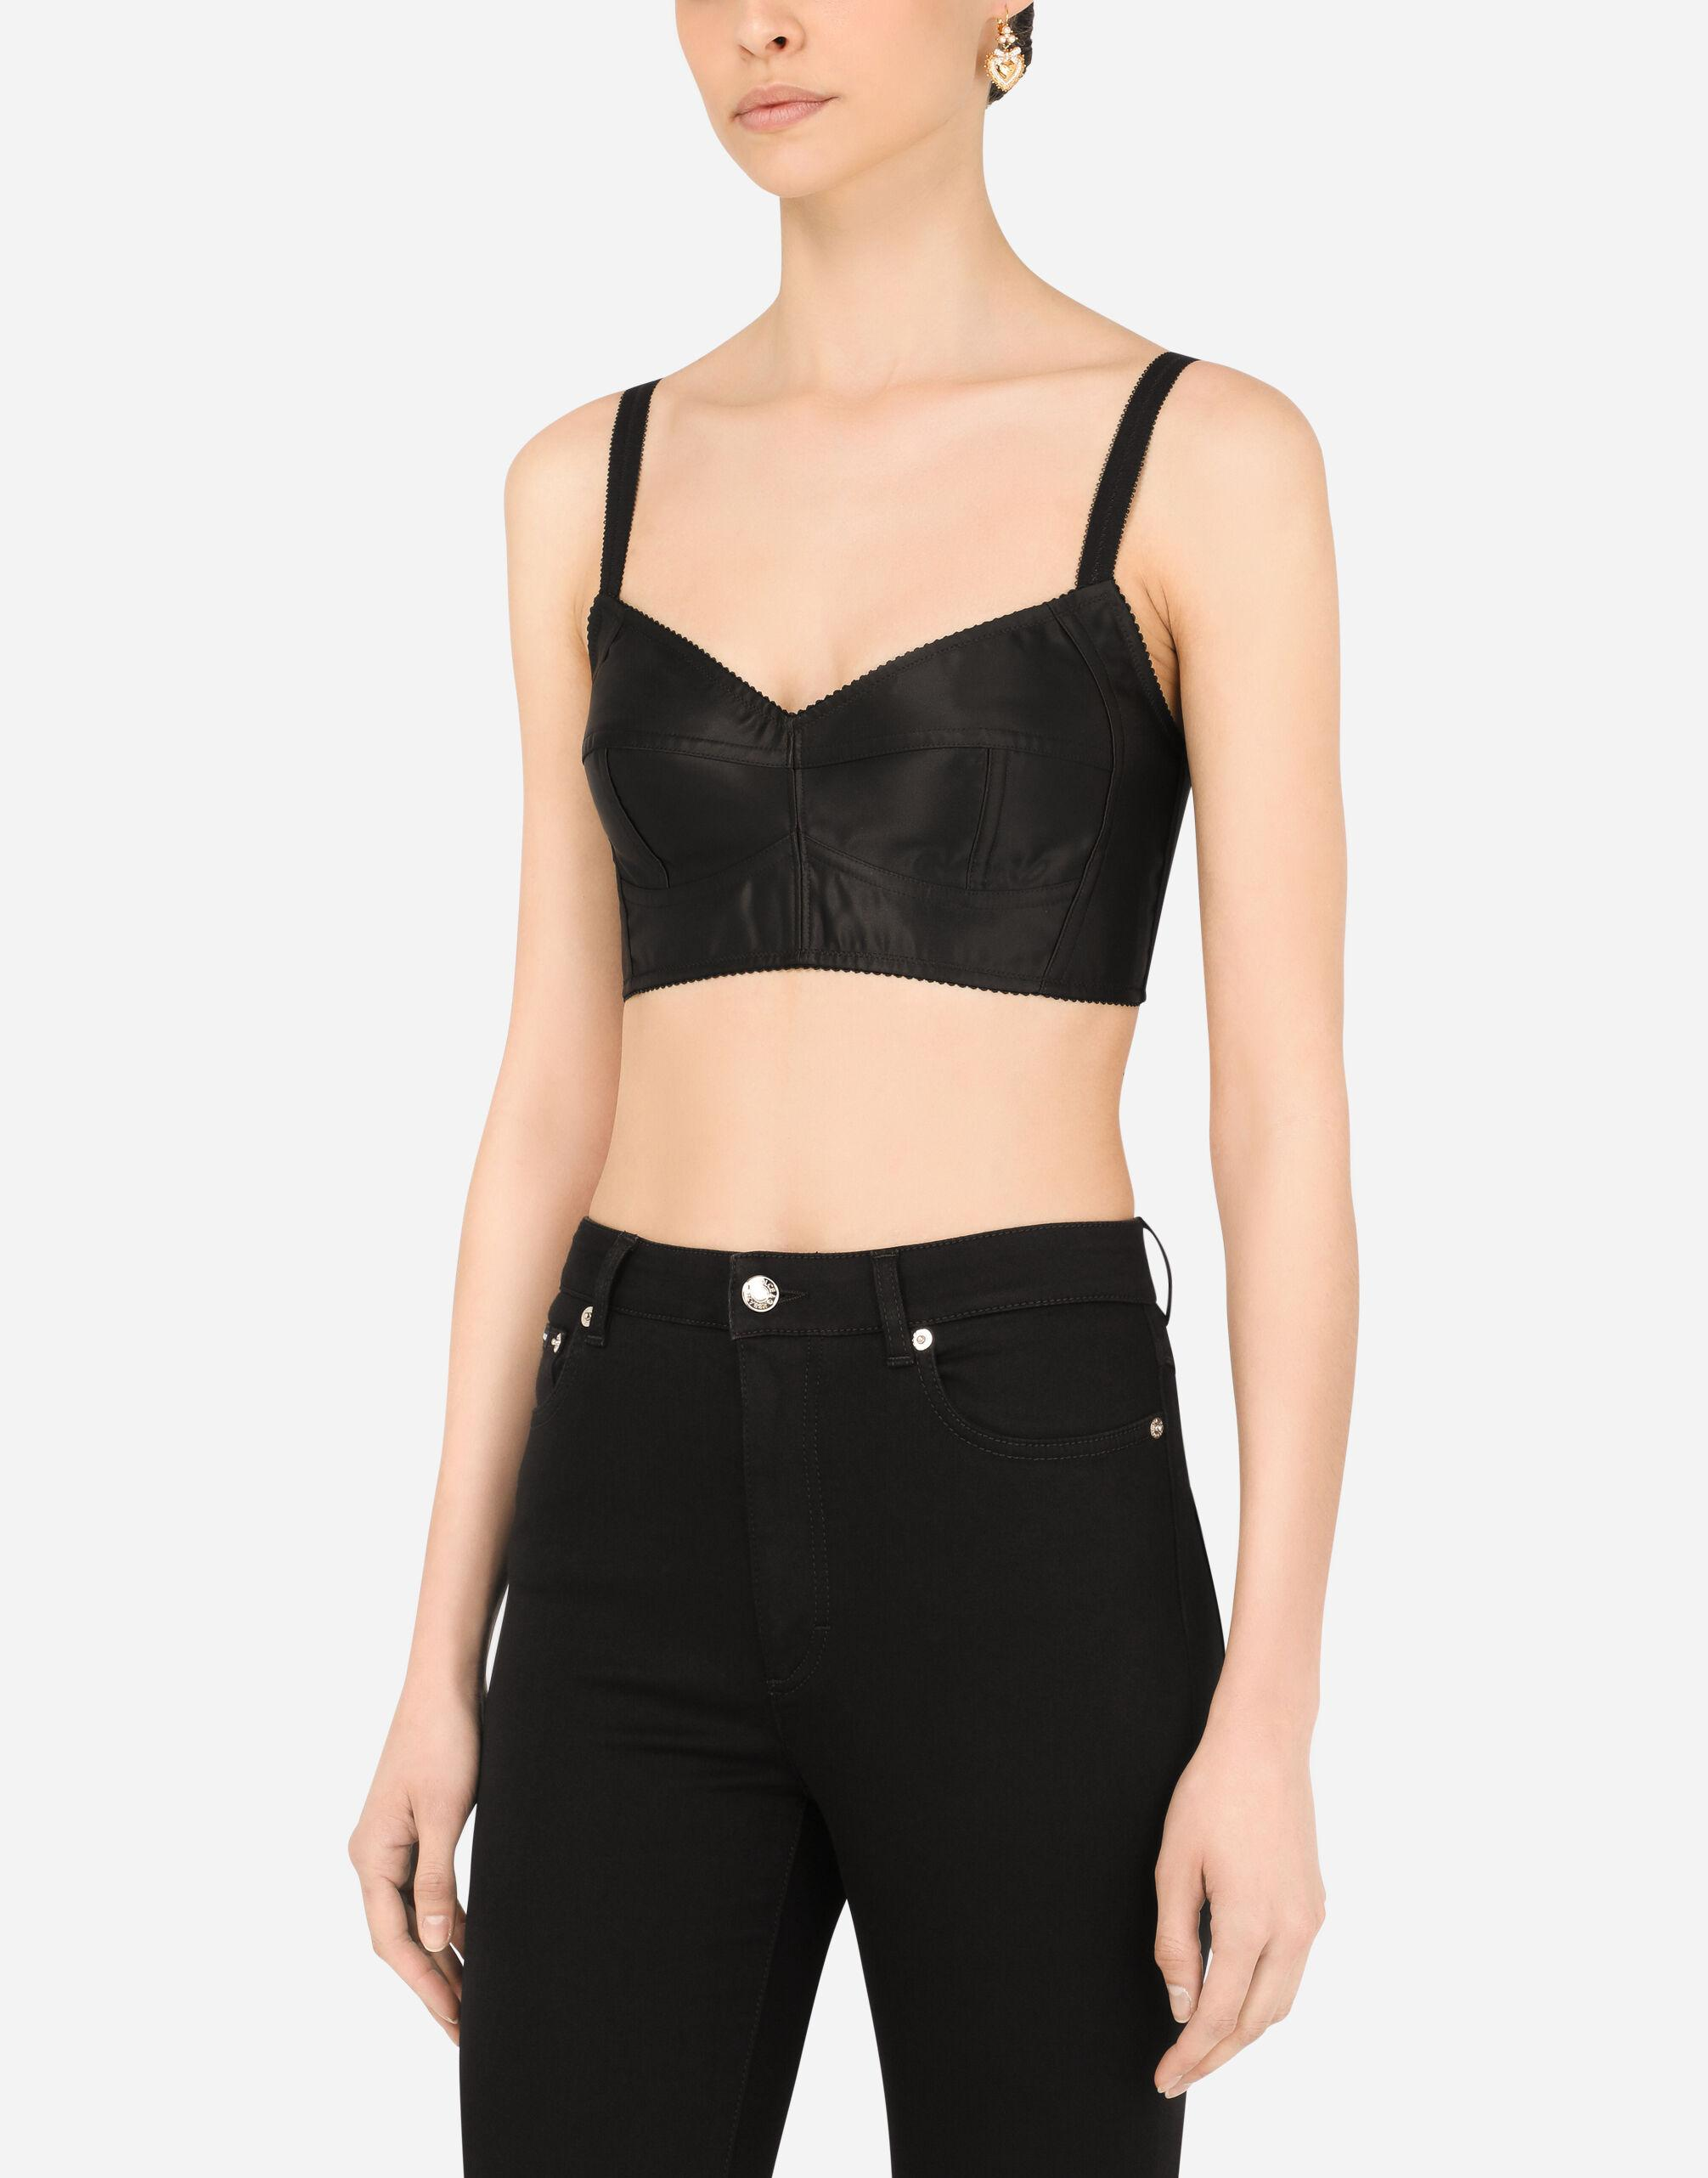 Bustier top with sweetheart neckline 2